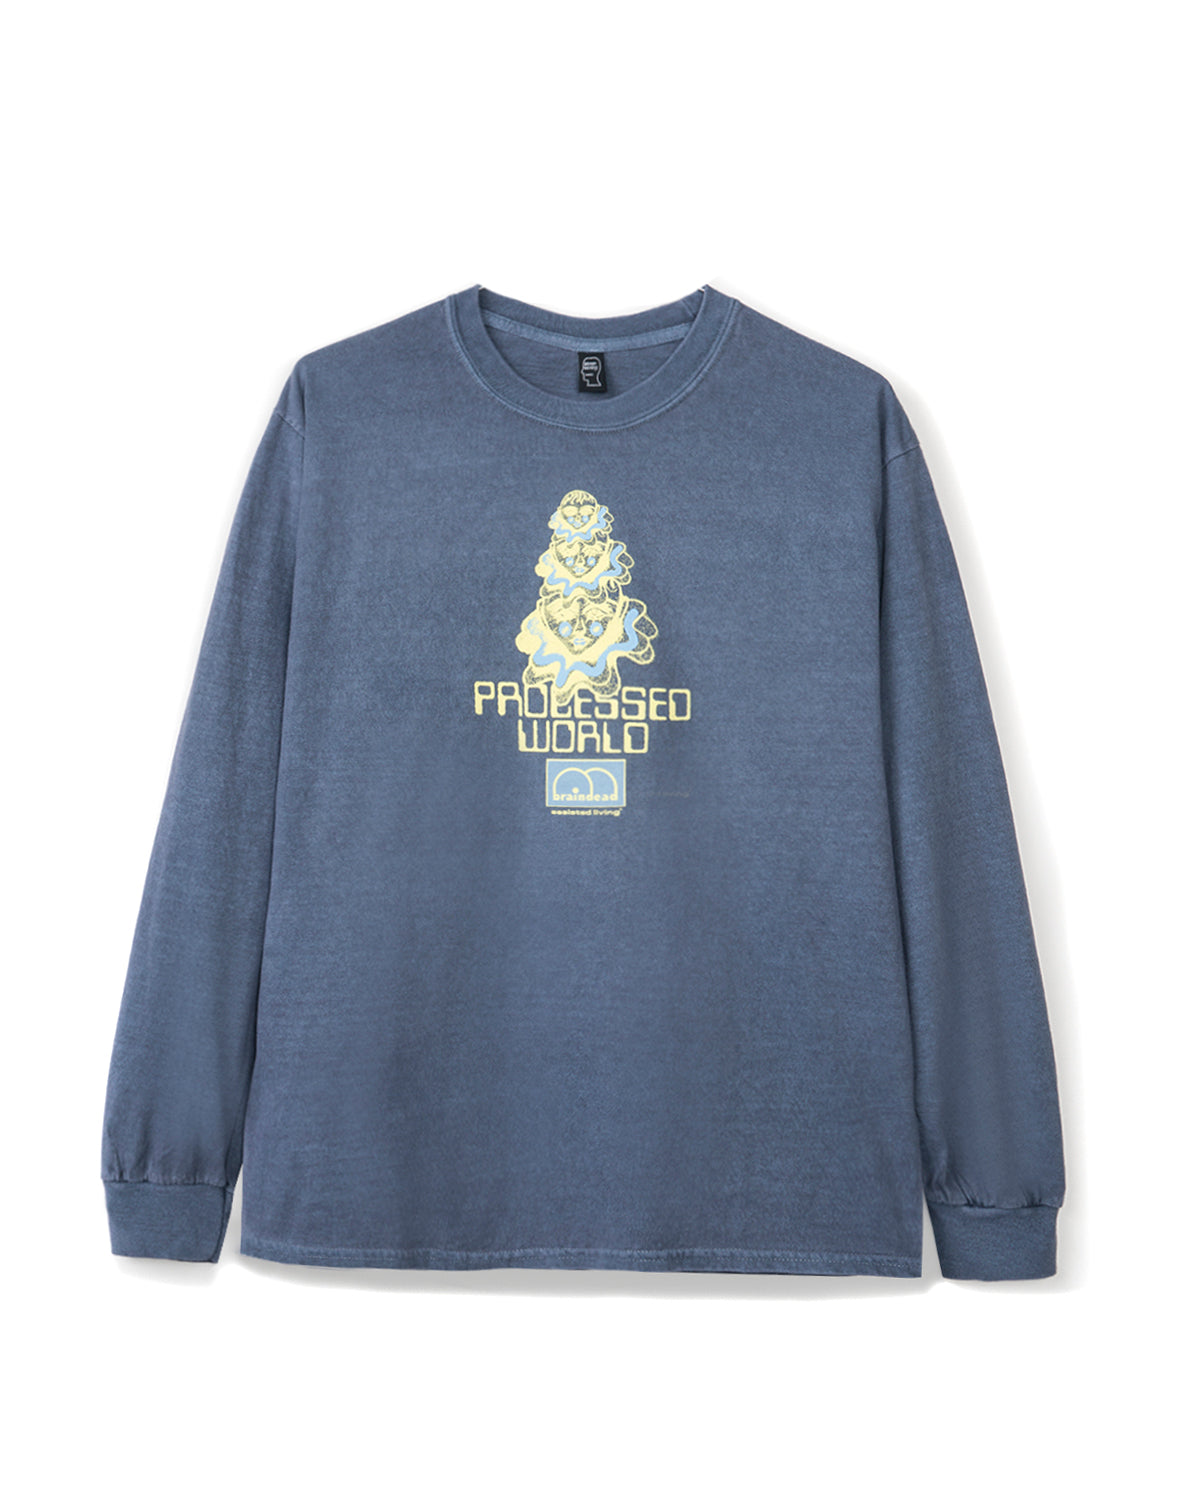 Processed World Long Sleeve - Washed Blue